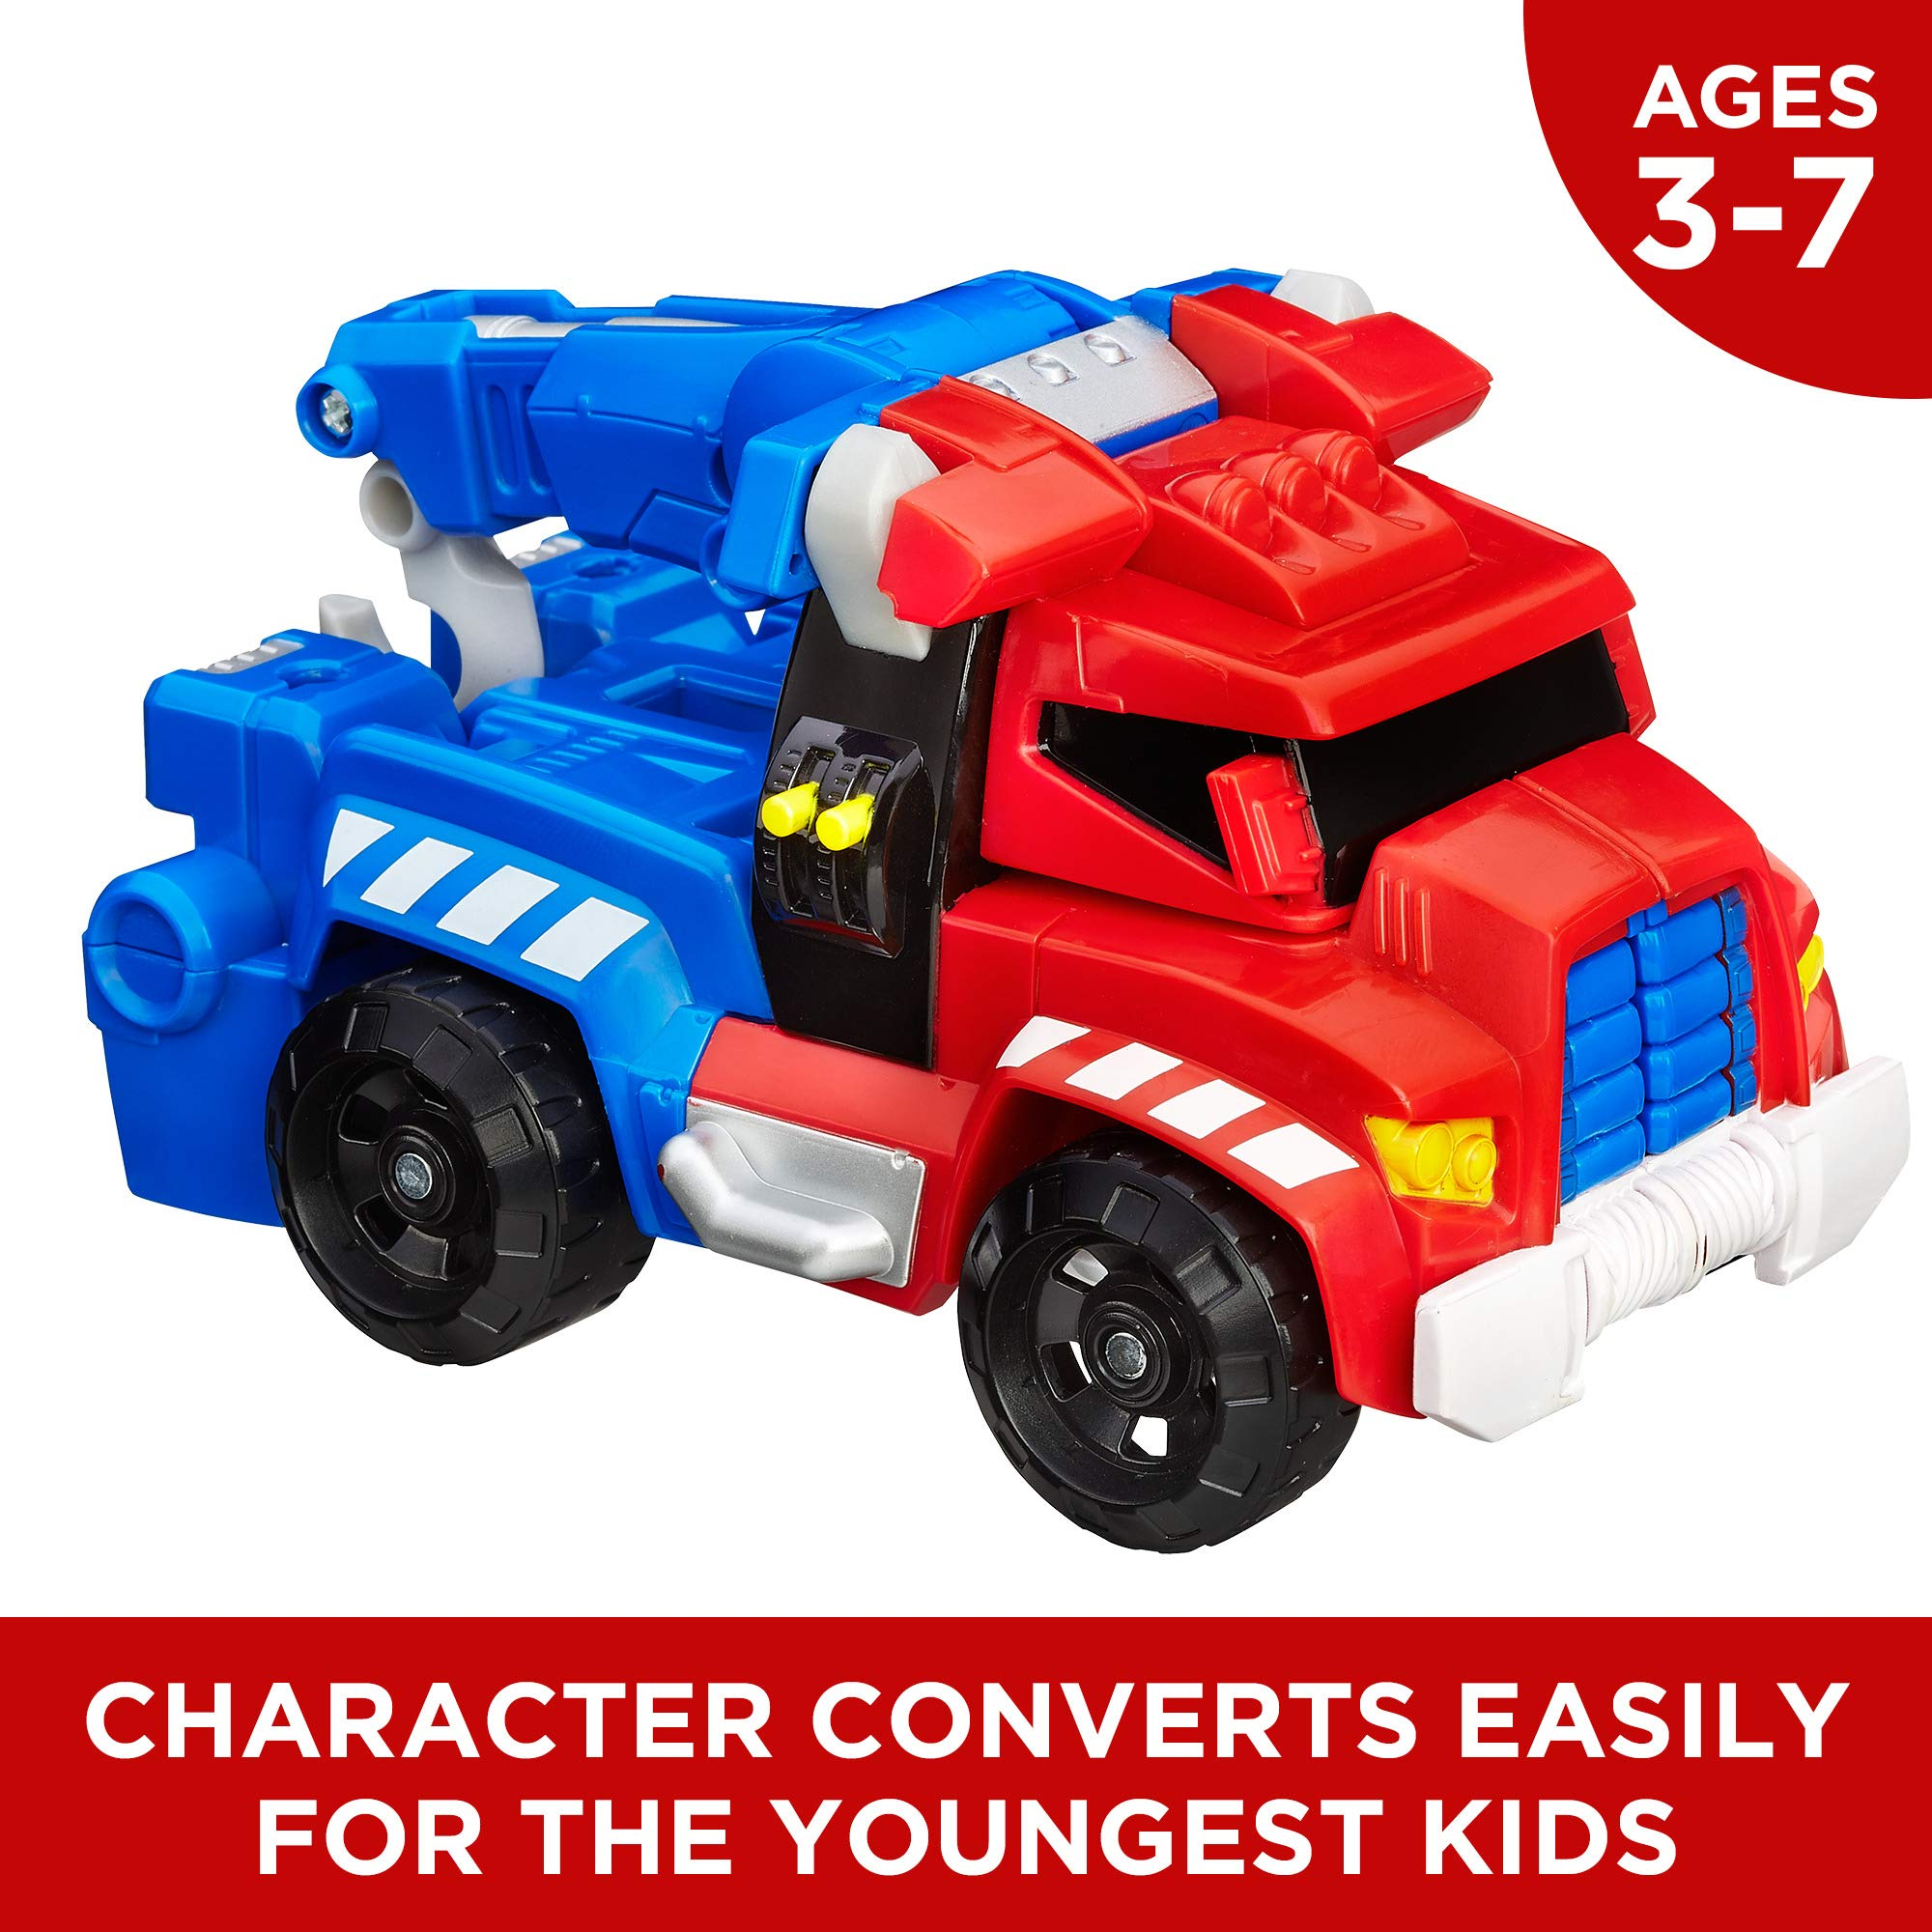 Playskool Heroes Transformers Rescue Bots Optimus Prime Action Figure, Ages 3-7 (Amazon Exclusive) by Playskool (Image #3)